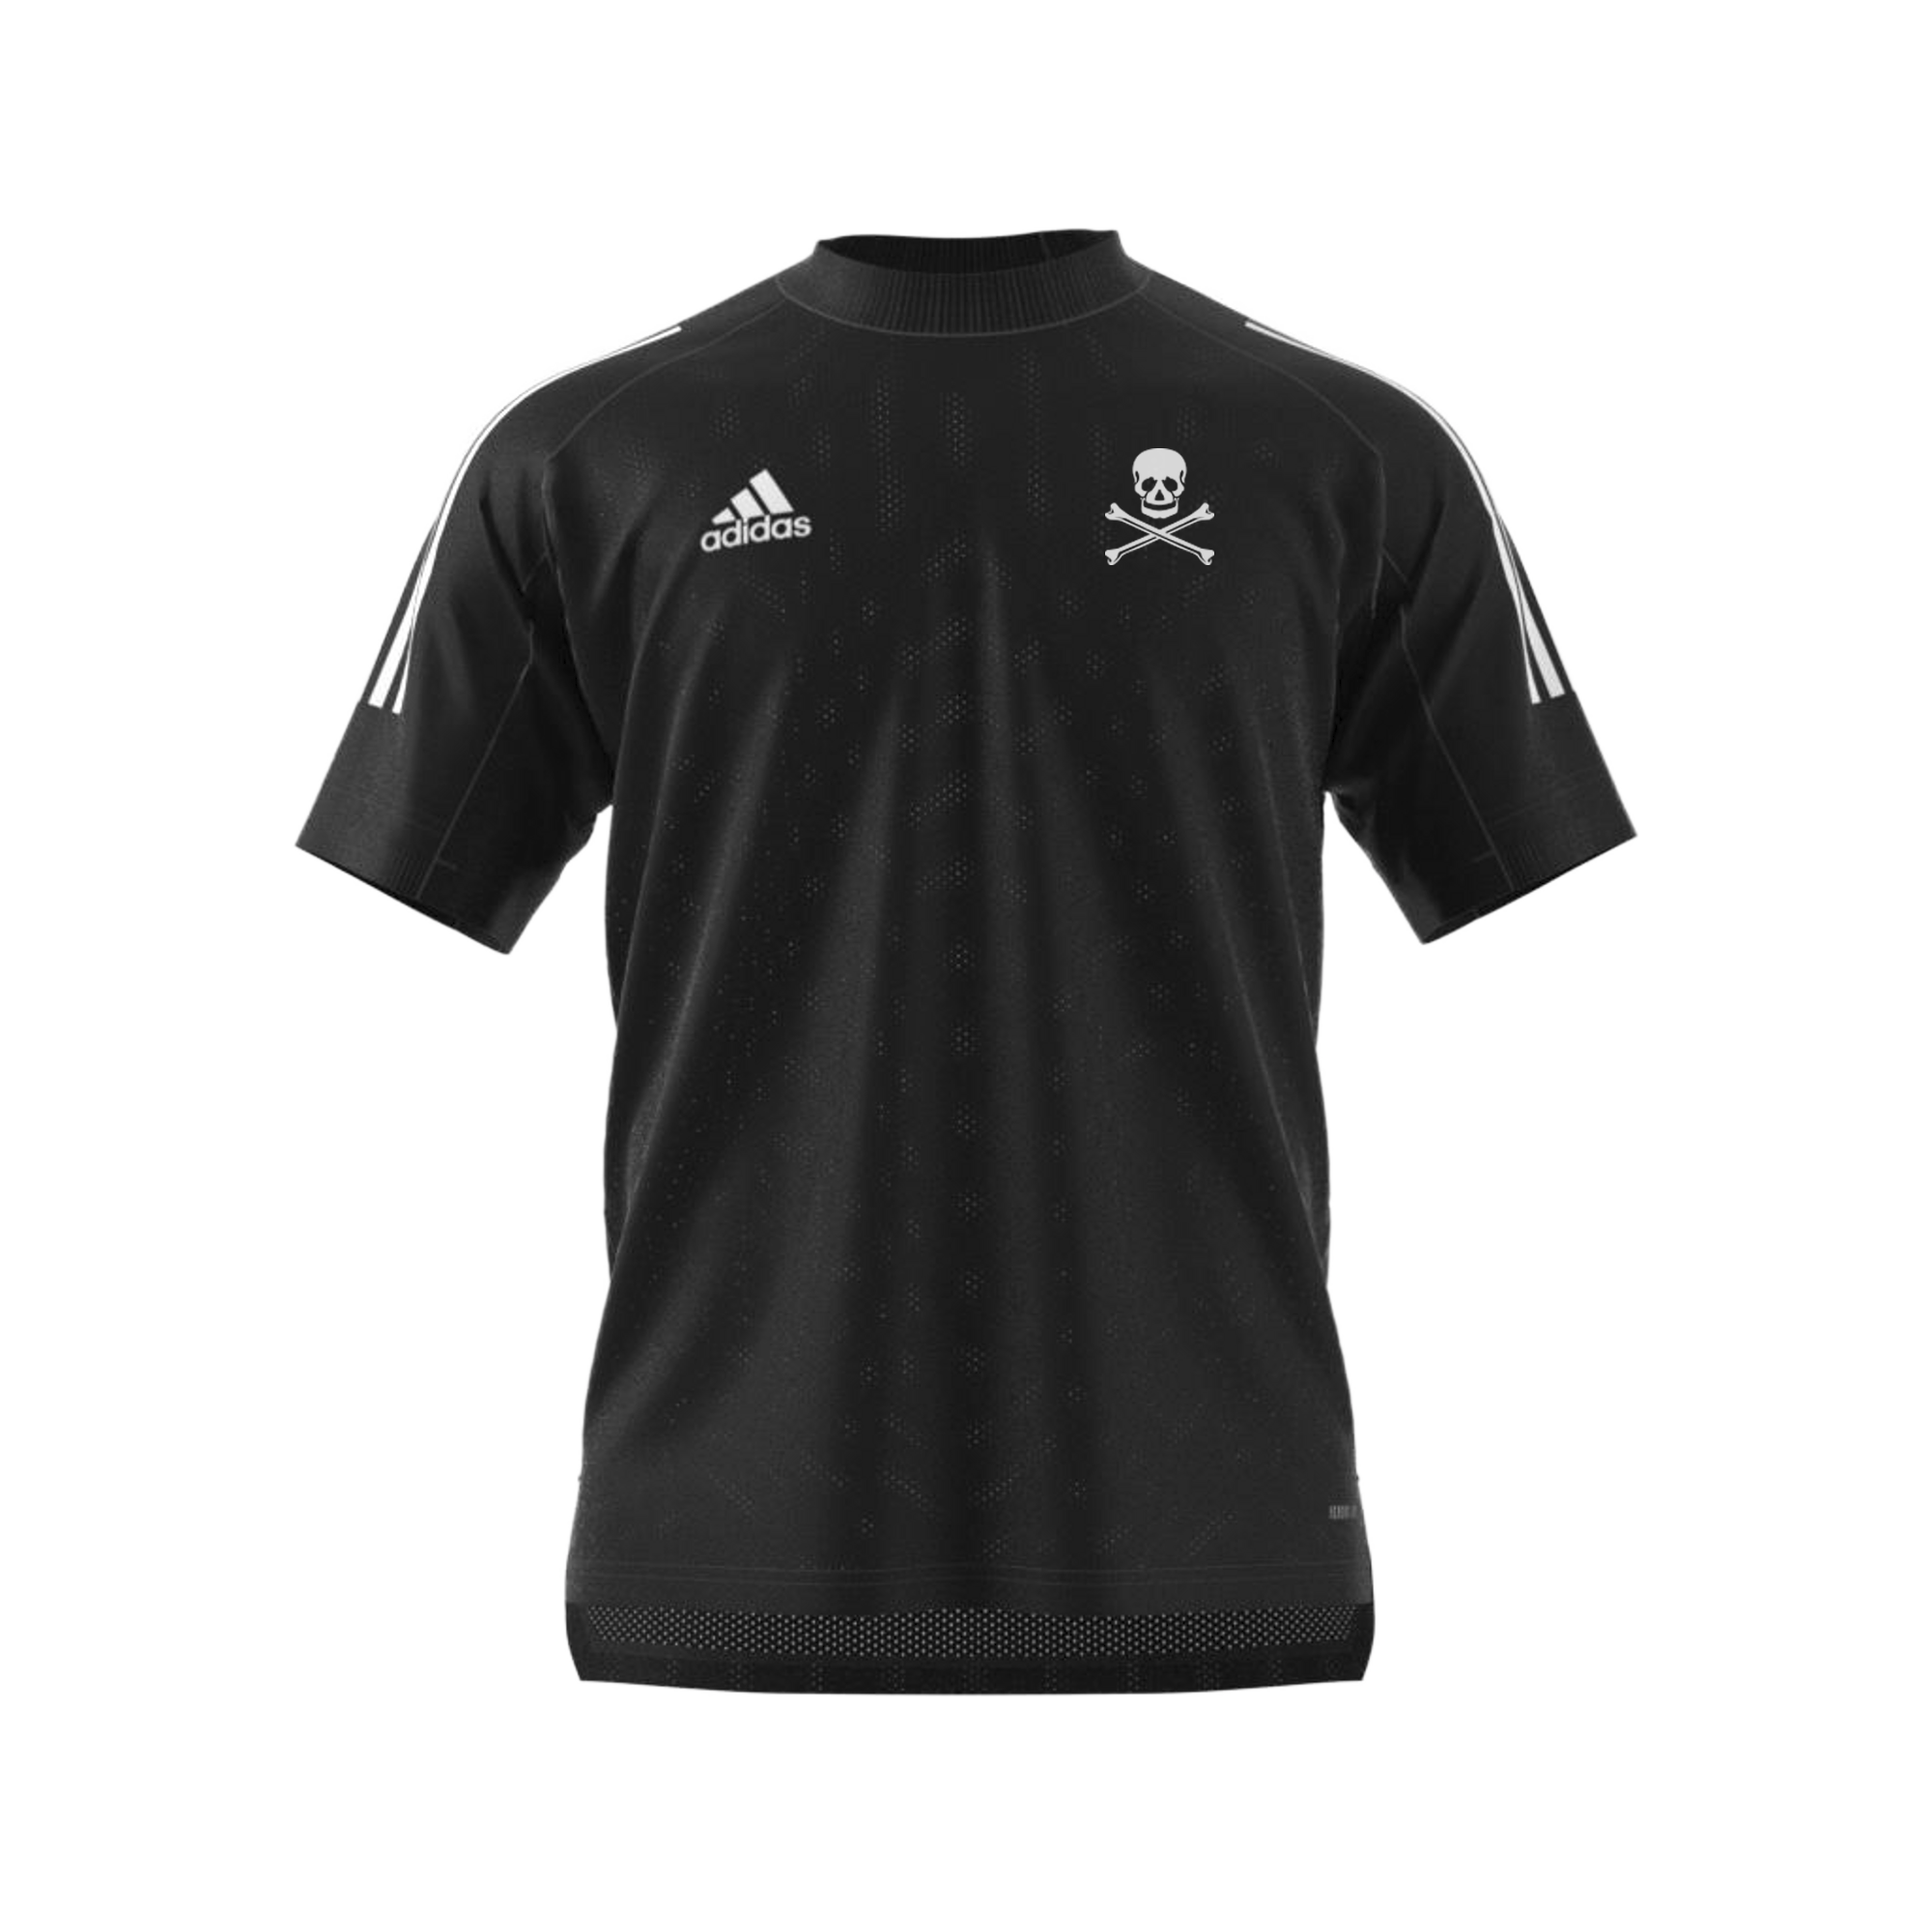 orlando-pirates-fc-shop-ED9216-Condivo20-Training-Jersey-1.png